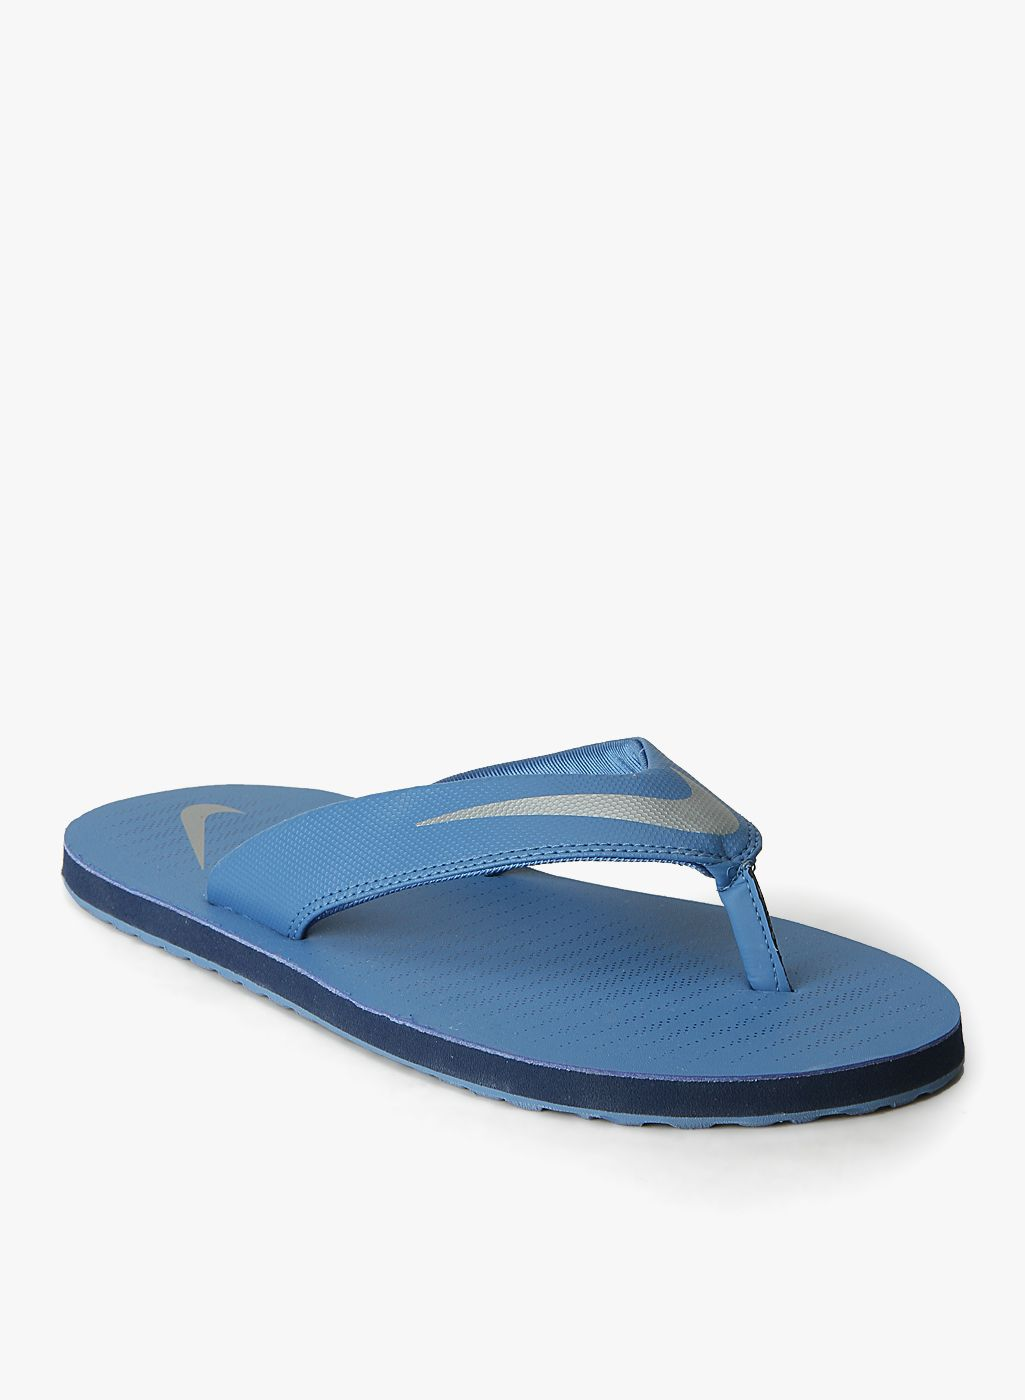 7edbd5922bb2 Buy Nike Chroma Thong 5 Blue Flip Flops for Men Online India